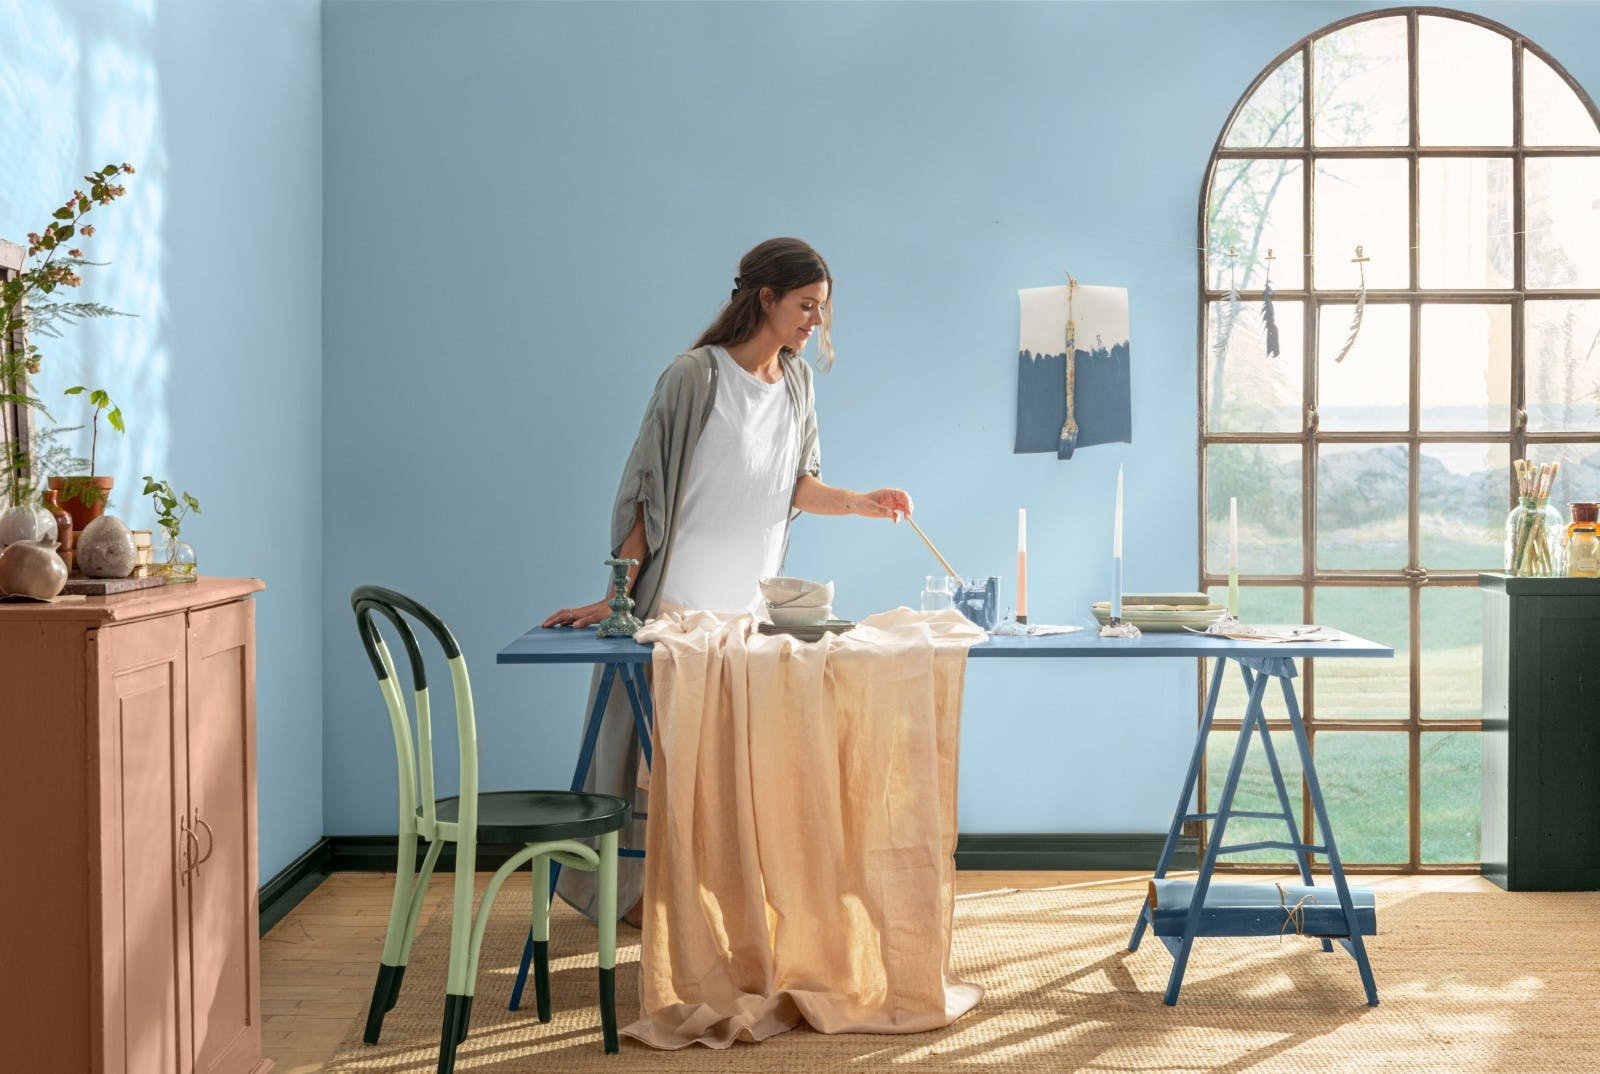 Tikkurila Color of the Year 2021 Header Image